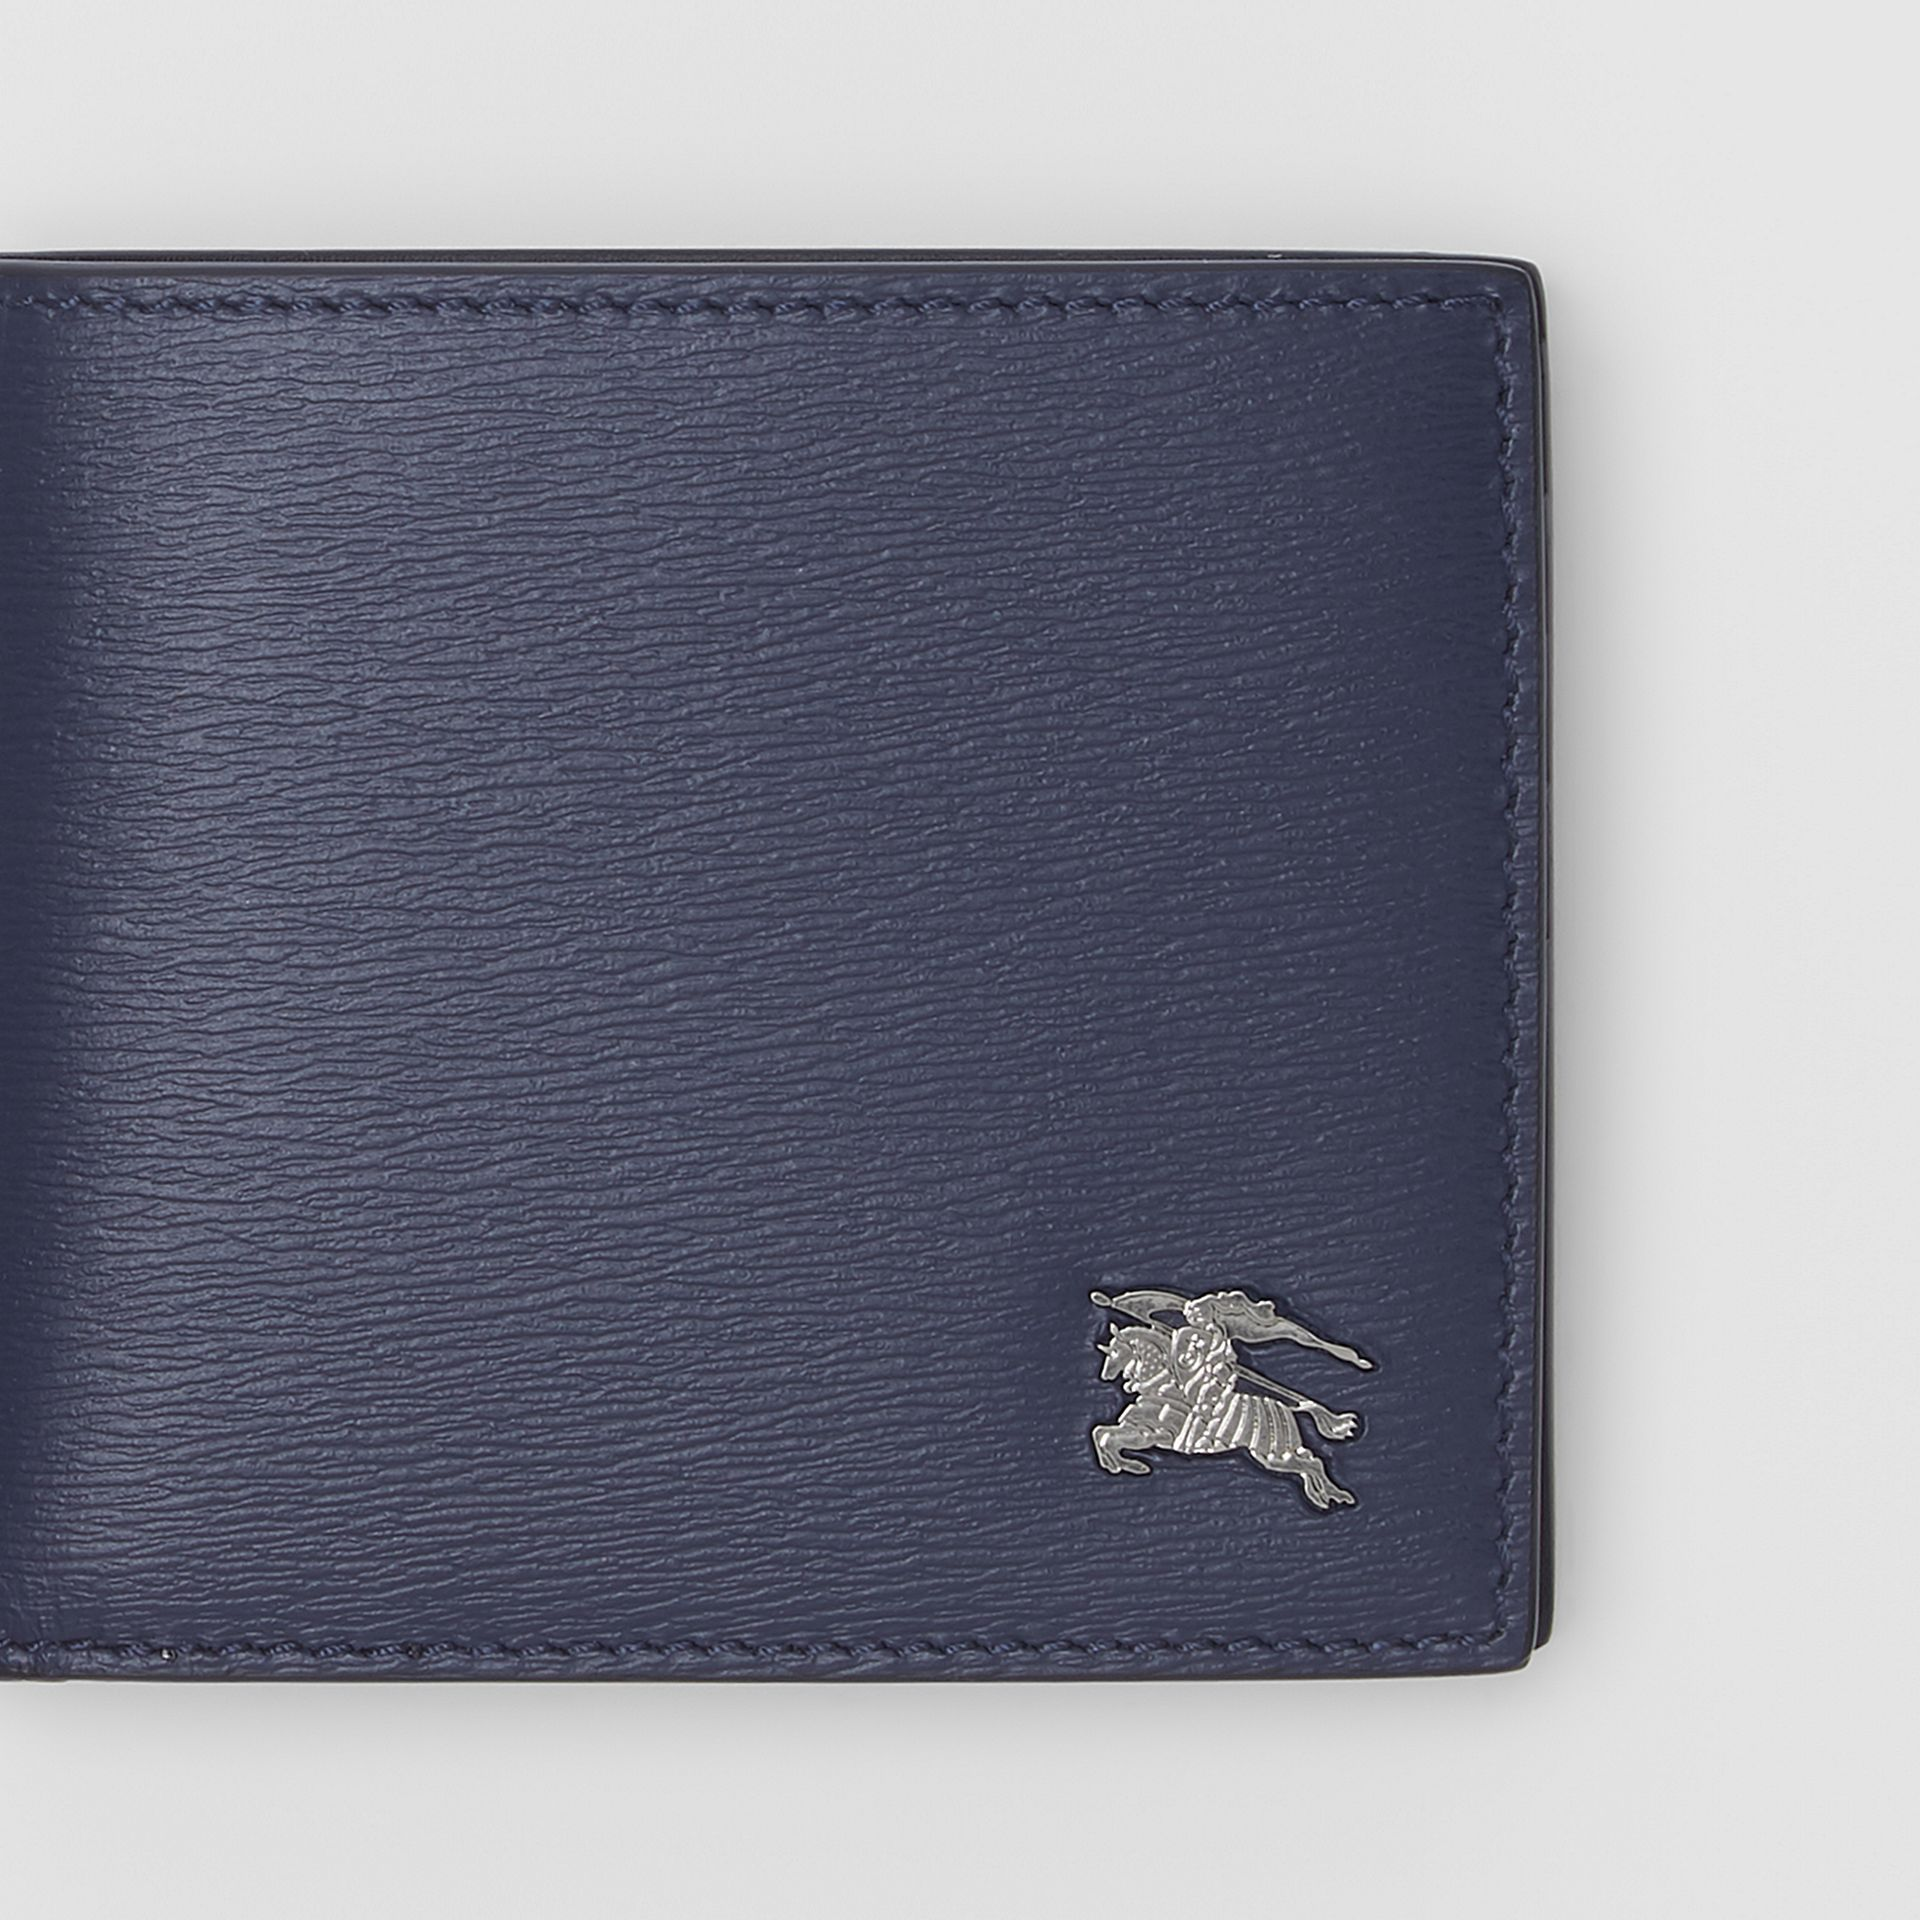 London Leather Bifold Wallet with ID Card Case in Navy - Men | Burberry United States - gallery image 1